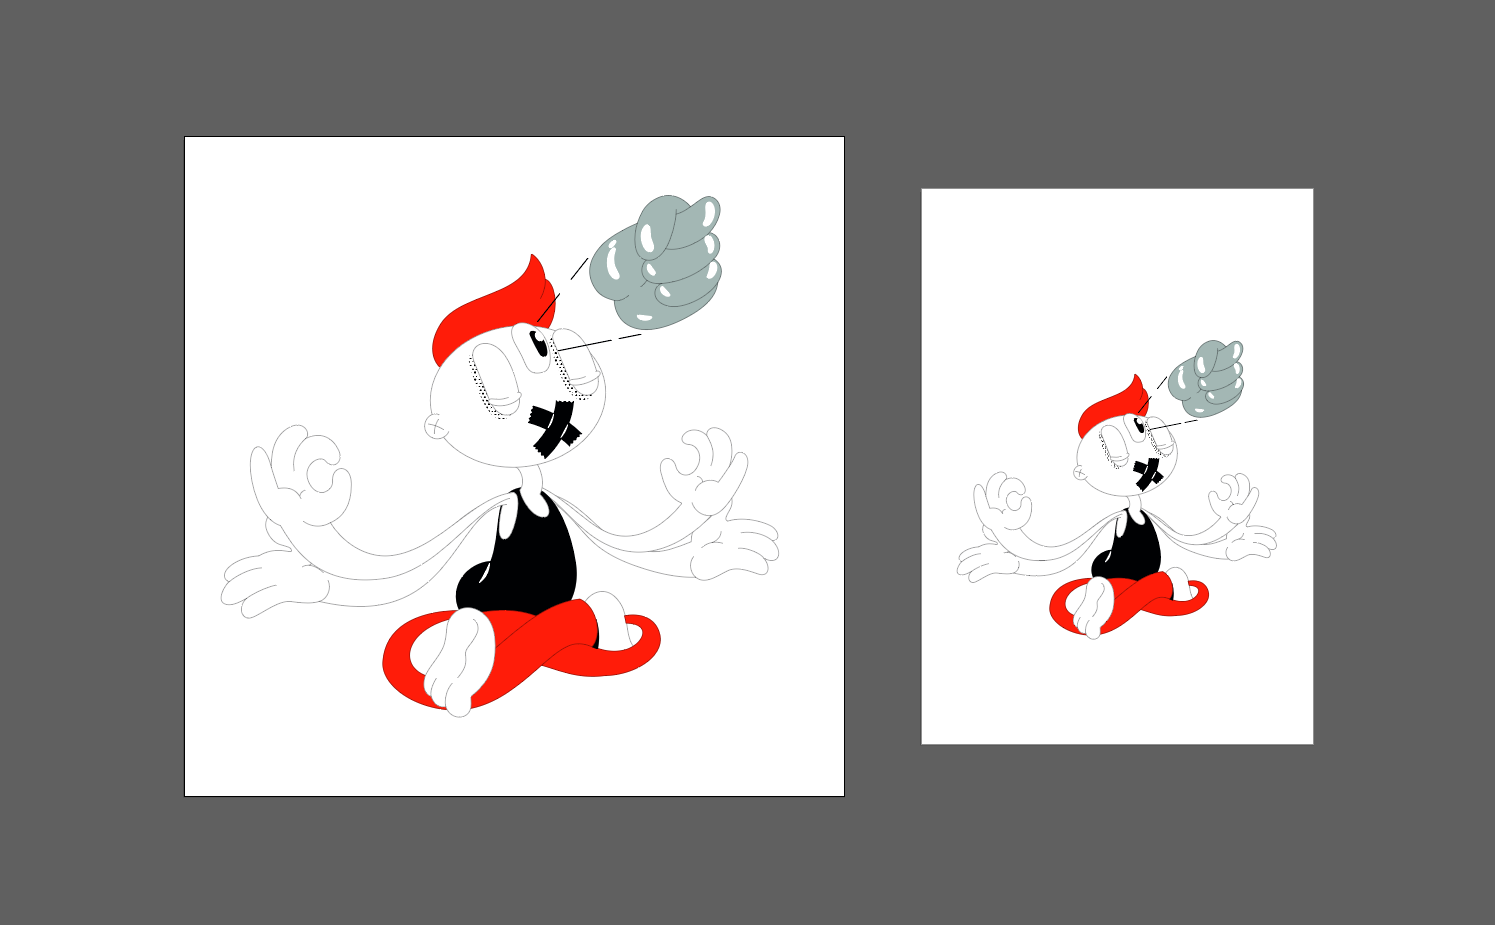 How to export an SVG illustration from After Effects: adjust the artboard size